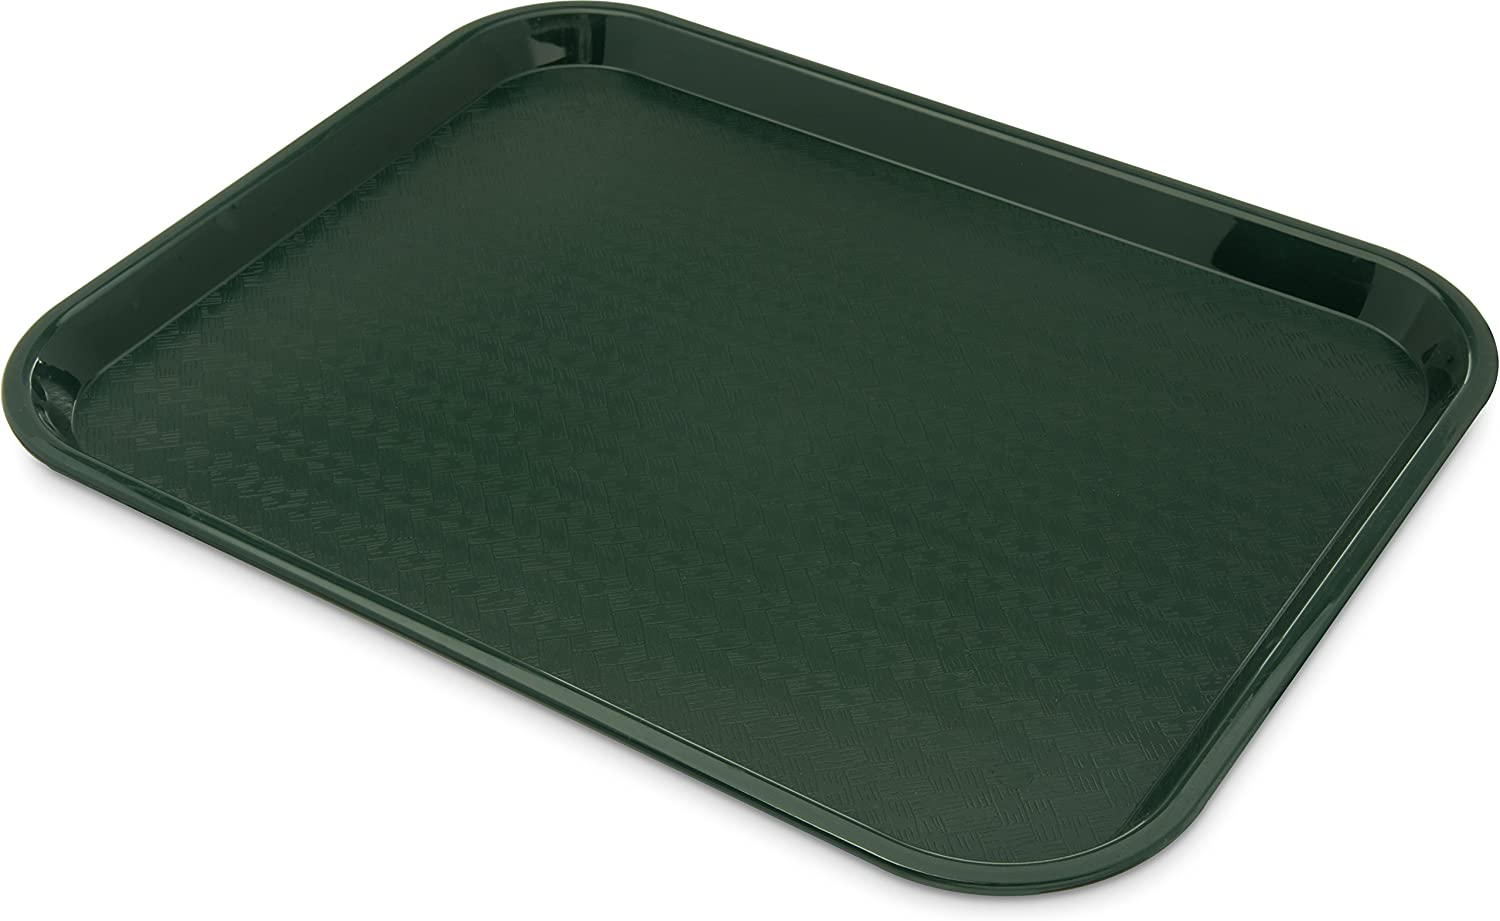 "Carlisle CT141808 Café Standard Cafeteria / Fast Food Tray, 14"" x 18"", Forest Green (Pack of 12)"